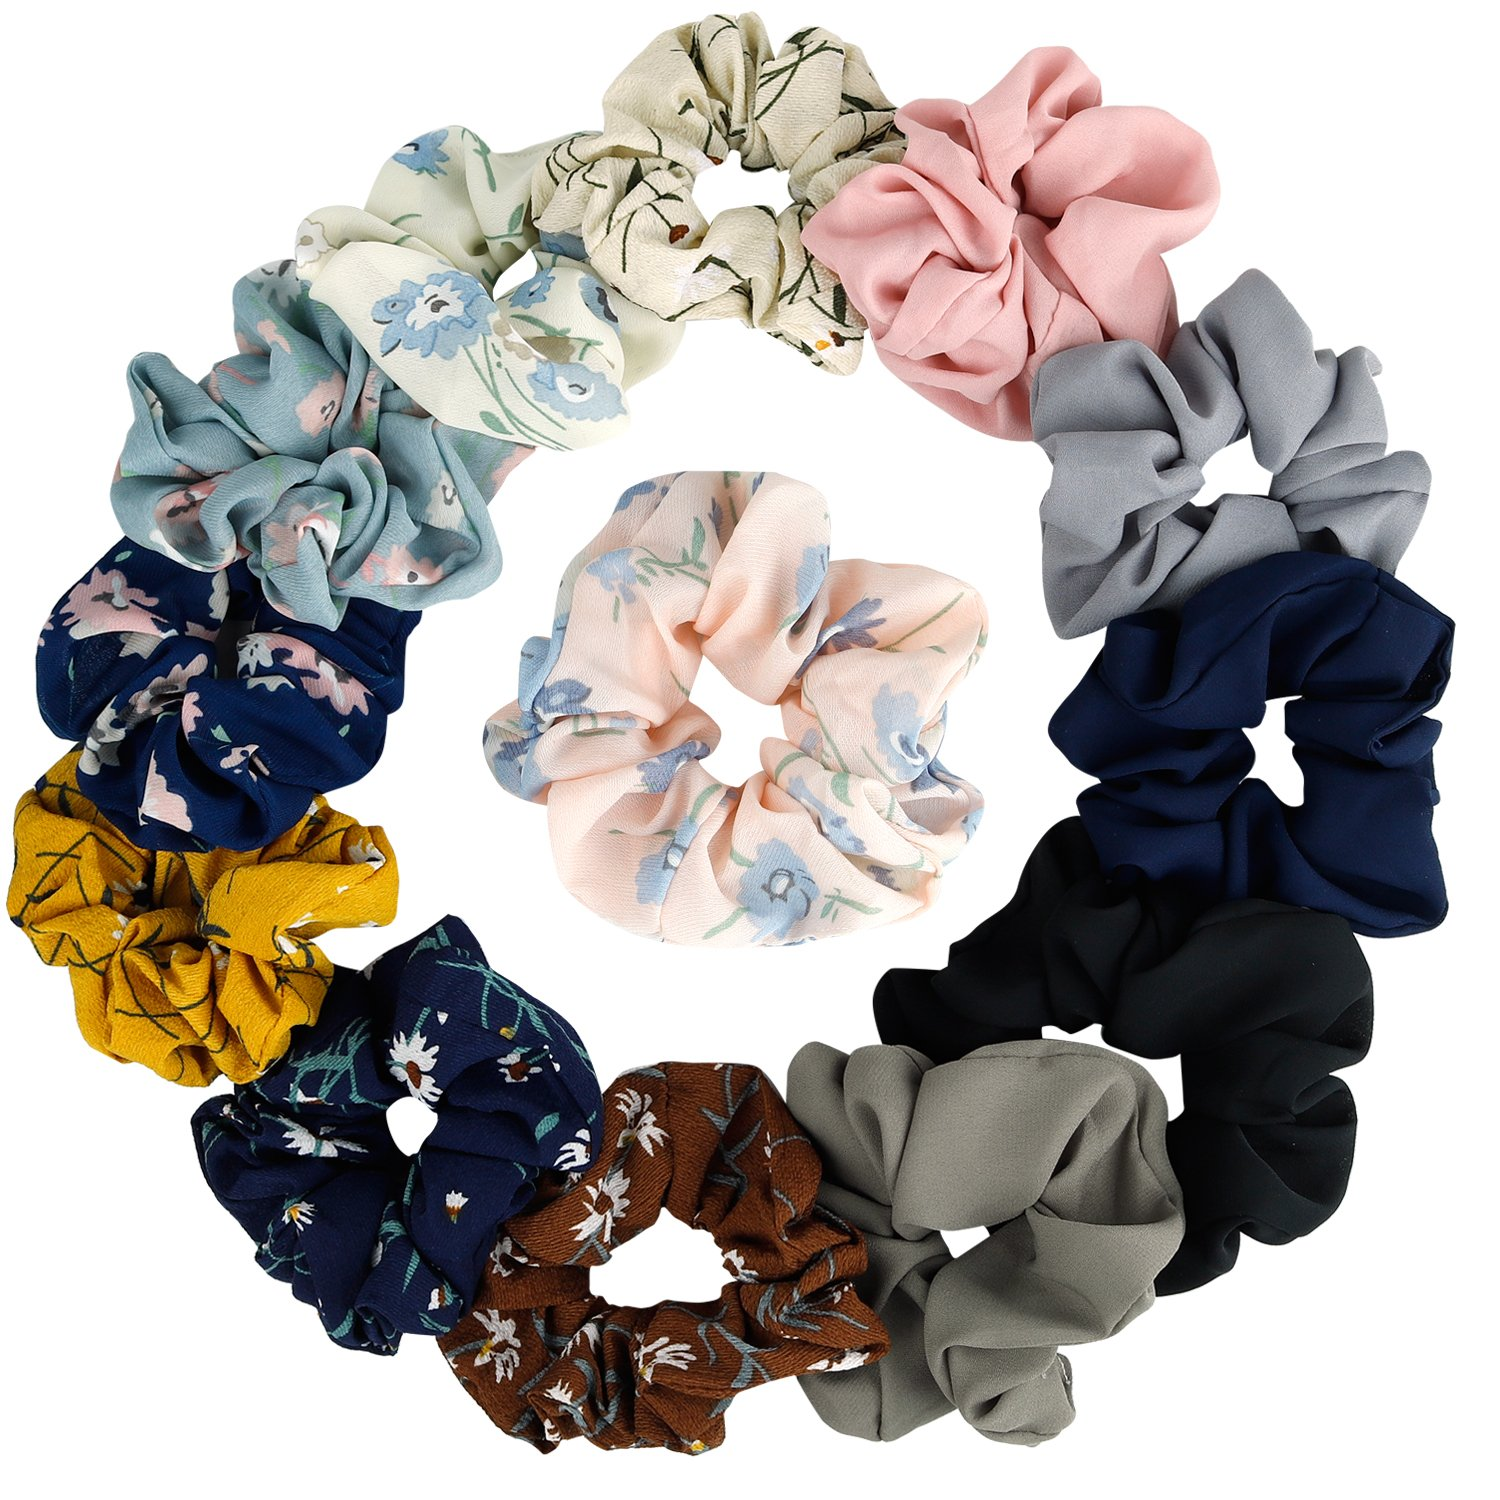 12A Colors Women's Chiffon Flower Hair Scrunchies Hair Bow Chiffon Ponytail Holder,Including 8 Colors Chiffon Flower Hair Scrunchies and 4A Solid Colors Chiffon Hair Ties (STYLE 1) by KECUCO